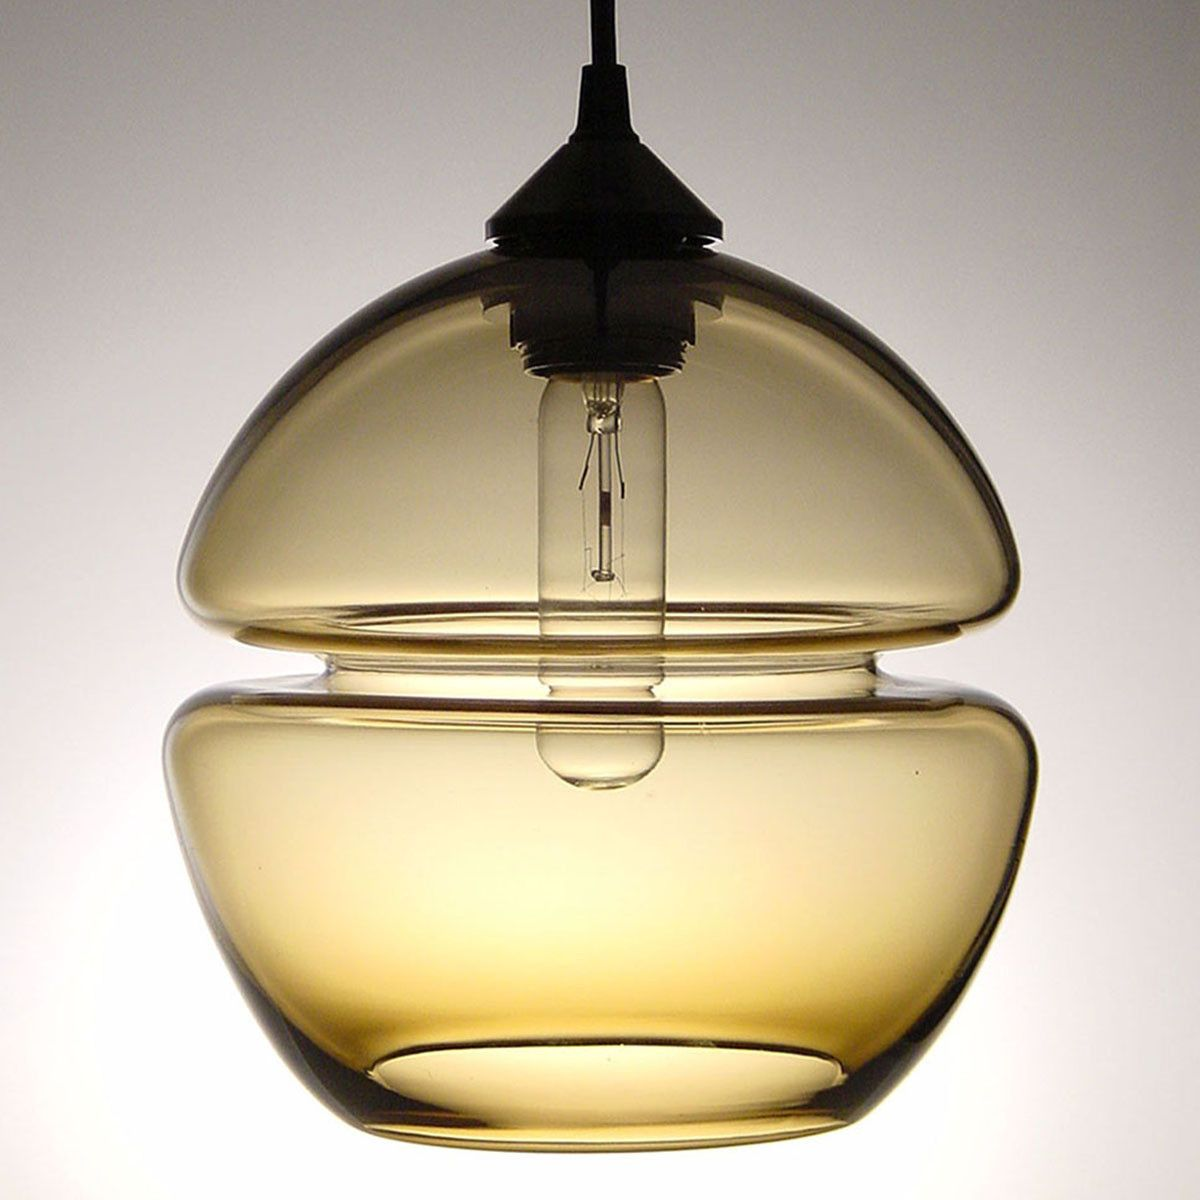 Groove orb pendant day by day pinterest pendant lamps